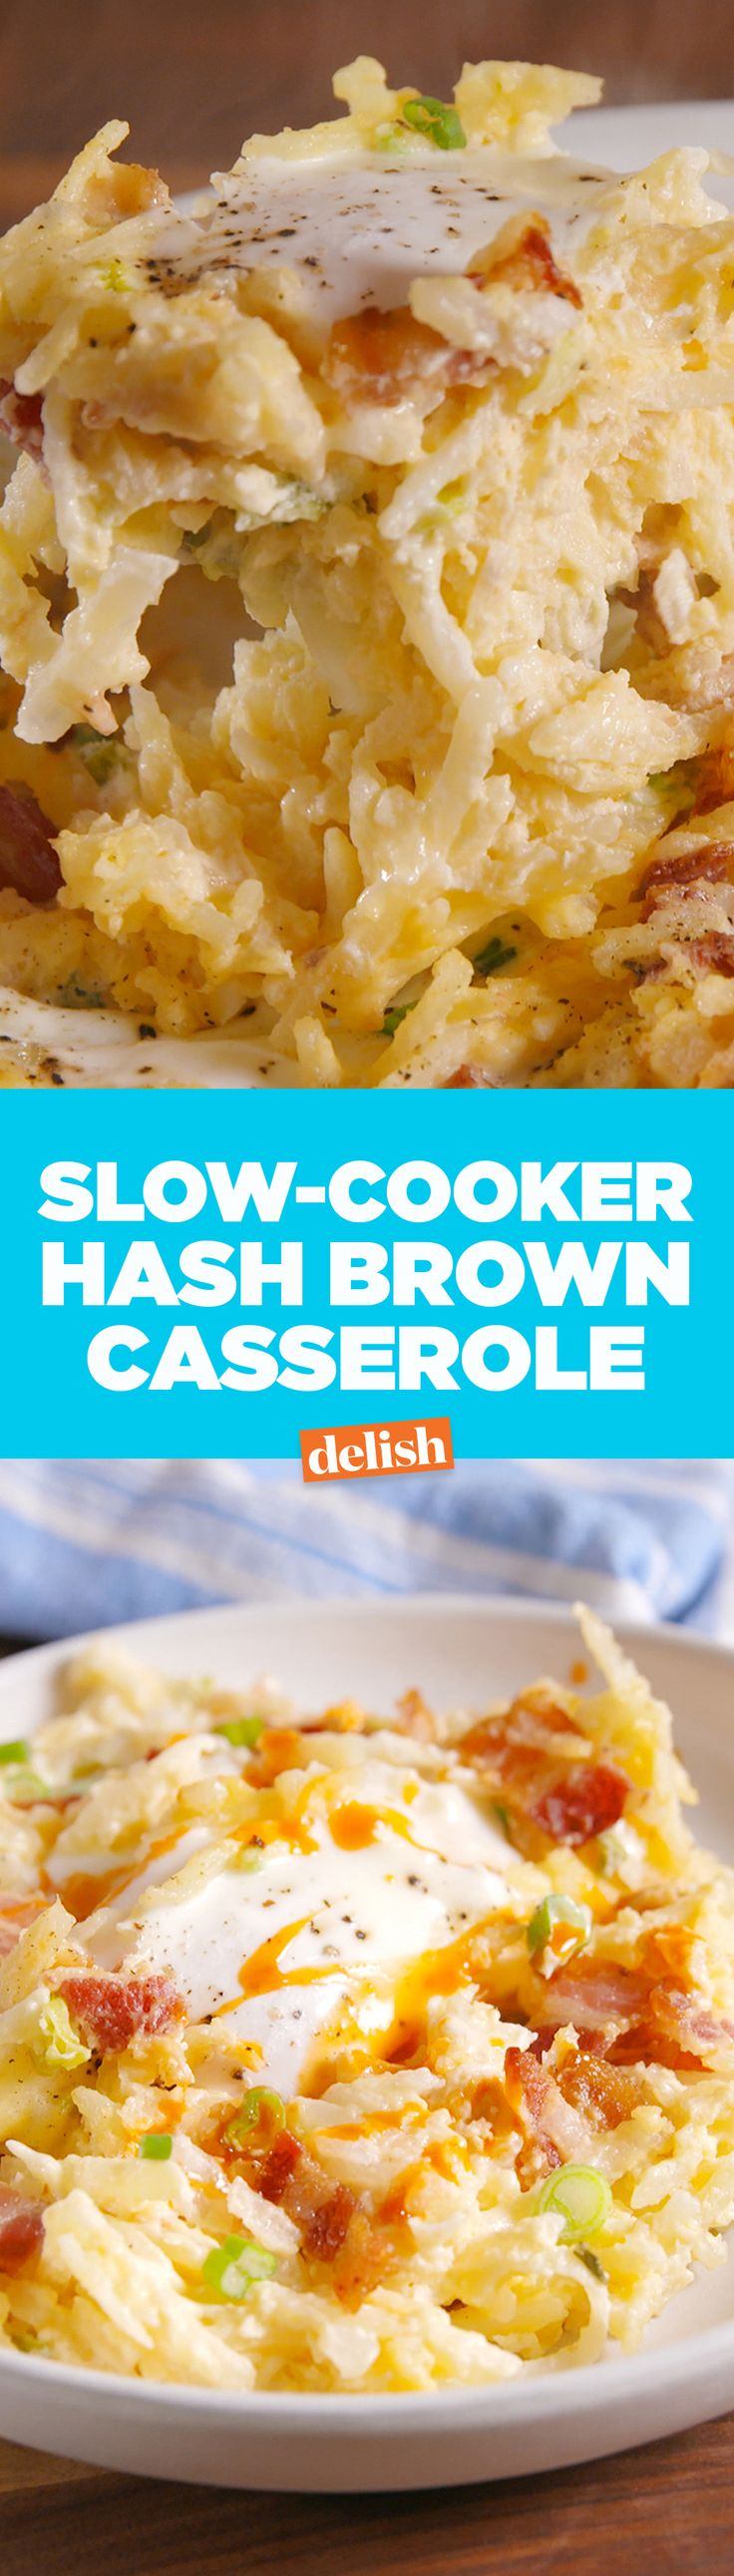 Cracker Barrel fans are going to freak out over this Slow-Cooker Hash Brown Casserole. Get the recipe on Delish.com.